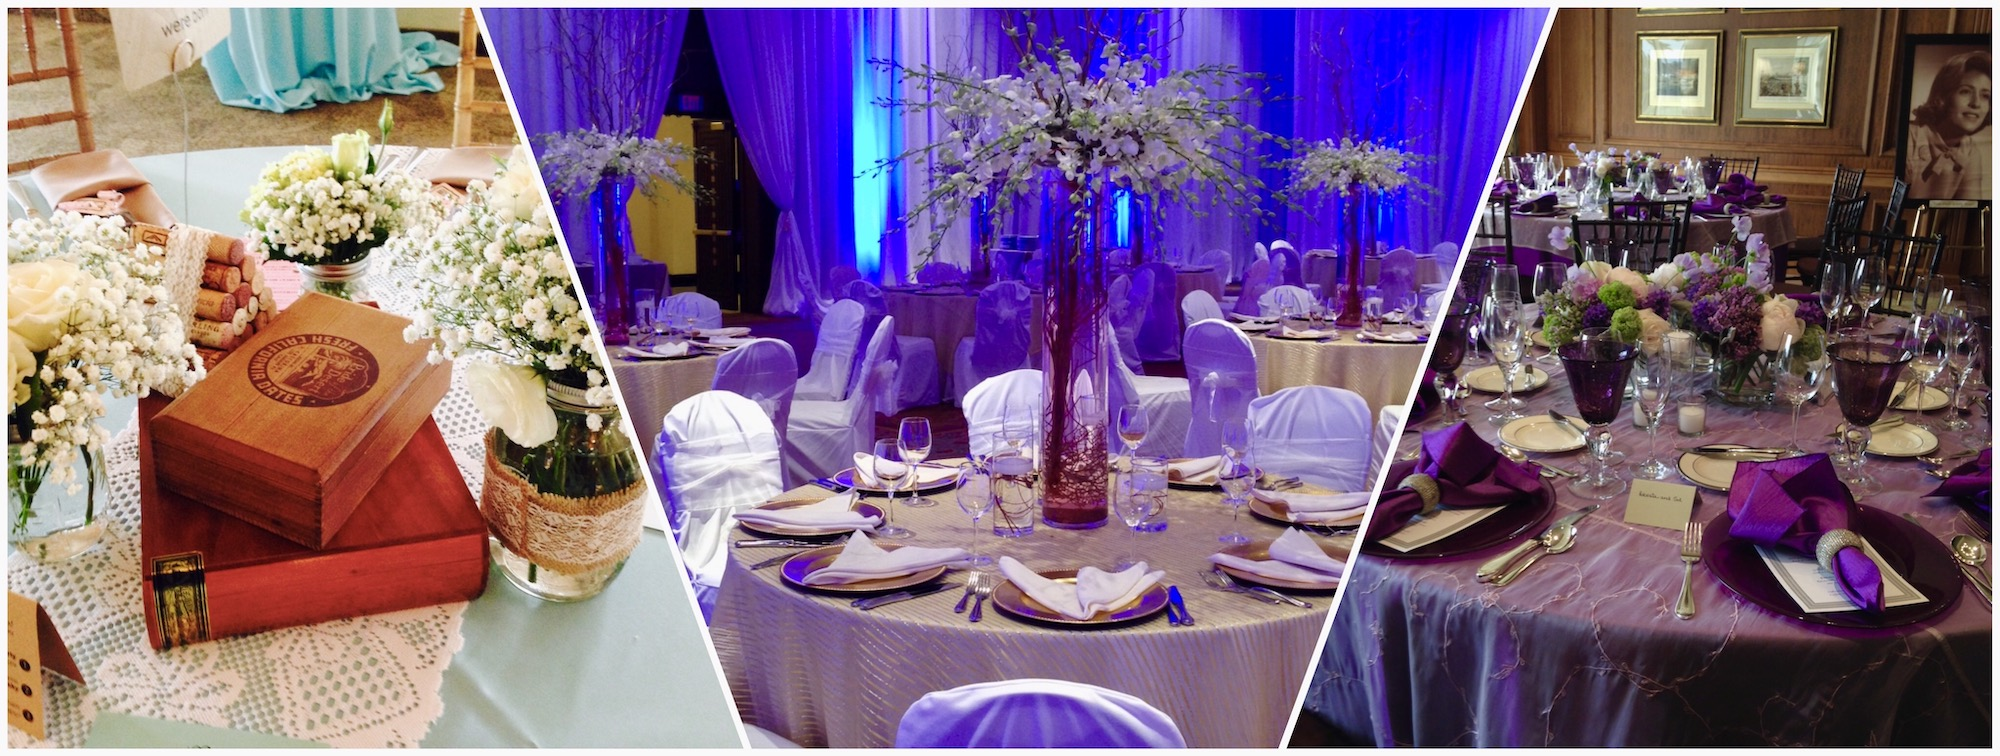 Corporate Event Floral Decor Services - West Palm Beach, FL Velene's Floral